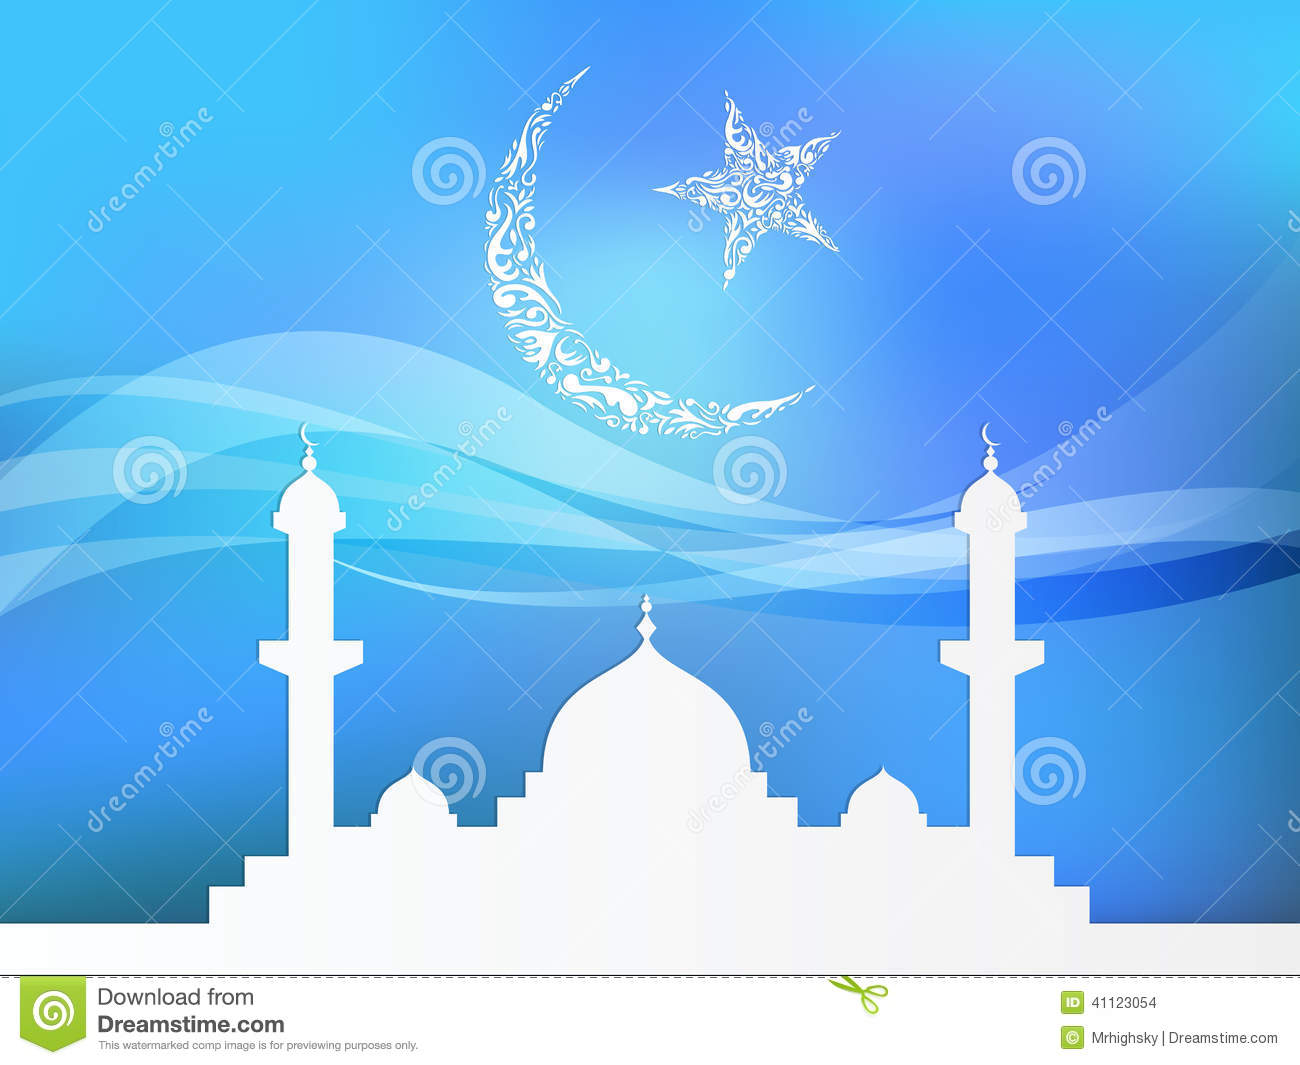 Islamic theme based background with crescent star and mosque.